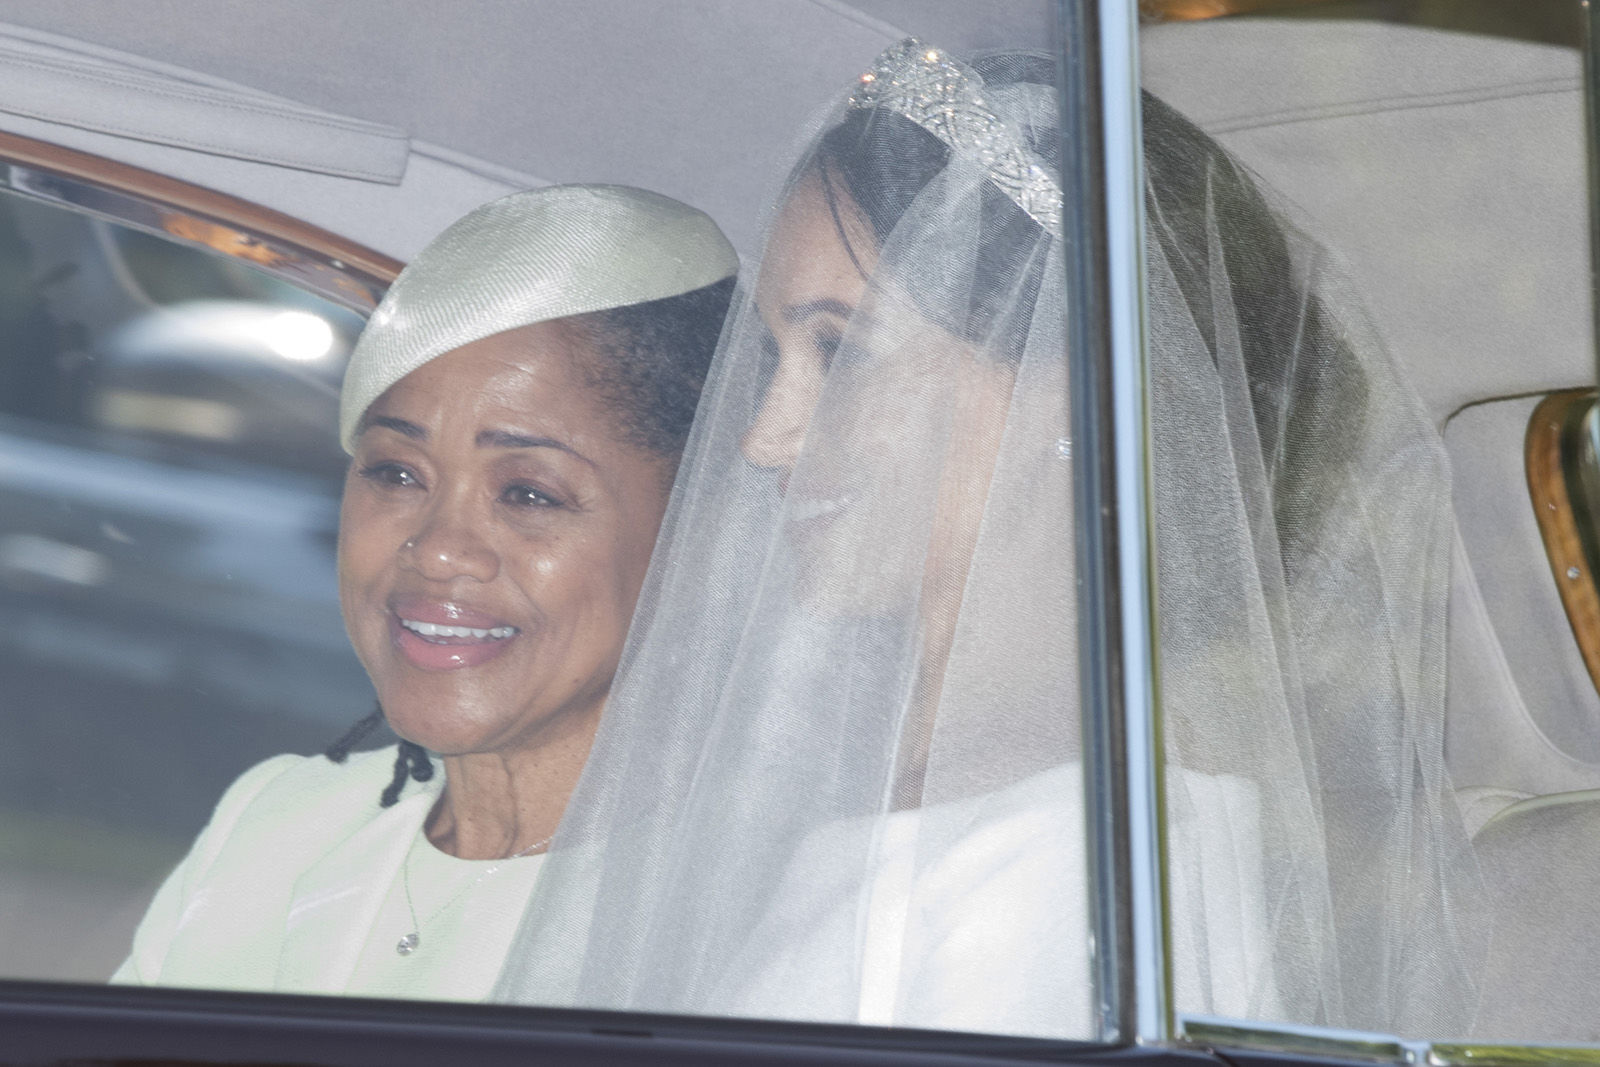 Meghan Markle and her mother Doria Ragland make their way to St George's Chapel at Windsor Castle before the wedding of Prince Harry to Meghan Markle on May 19, 2018 in Windsor, England. (Photo by Phil Harris - WPA Pool/Getty Images)